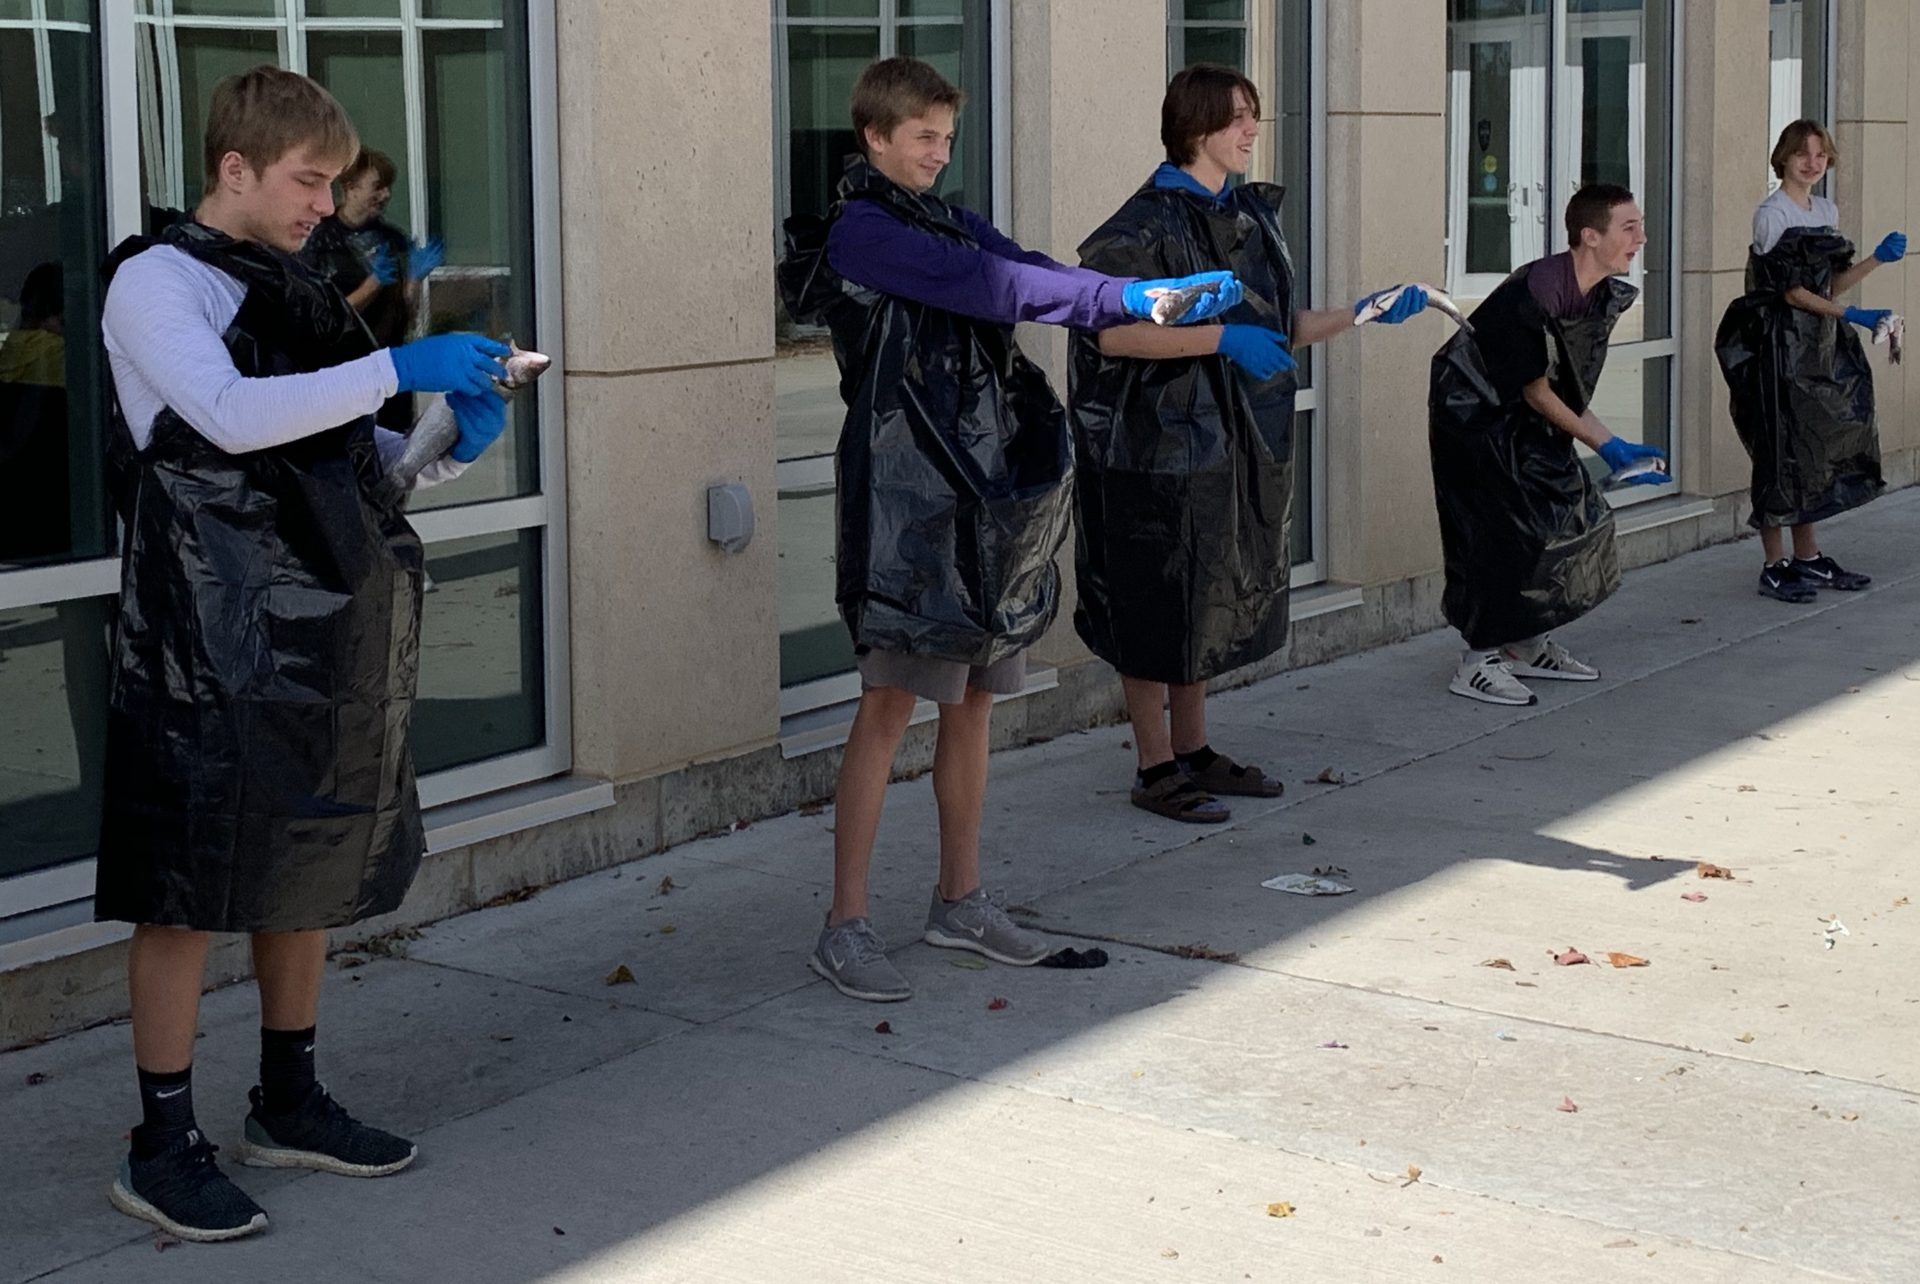 Students stand in the courtyard dressed in black garbage bags tossing fish.